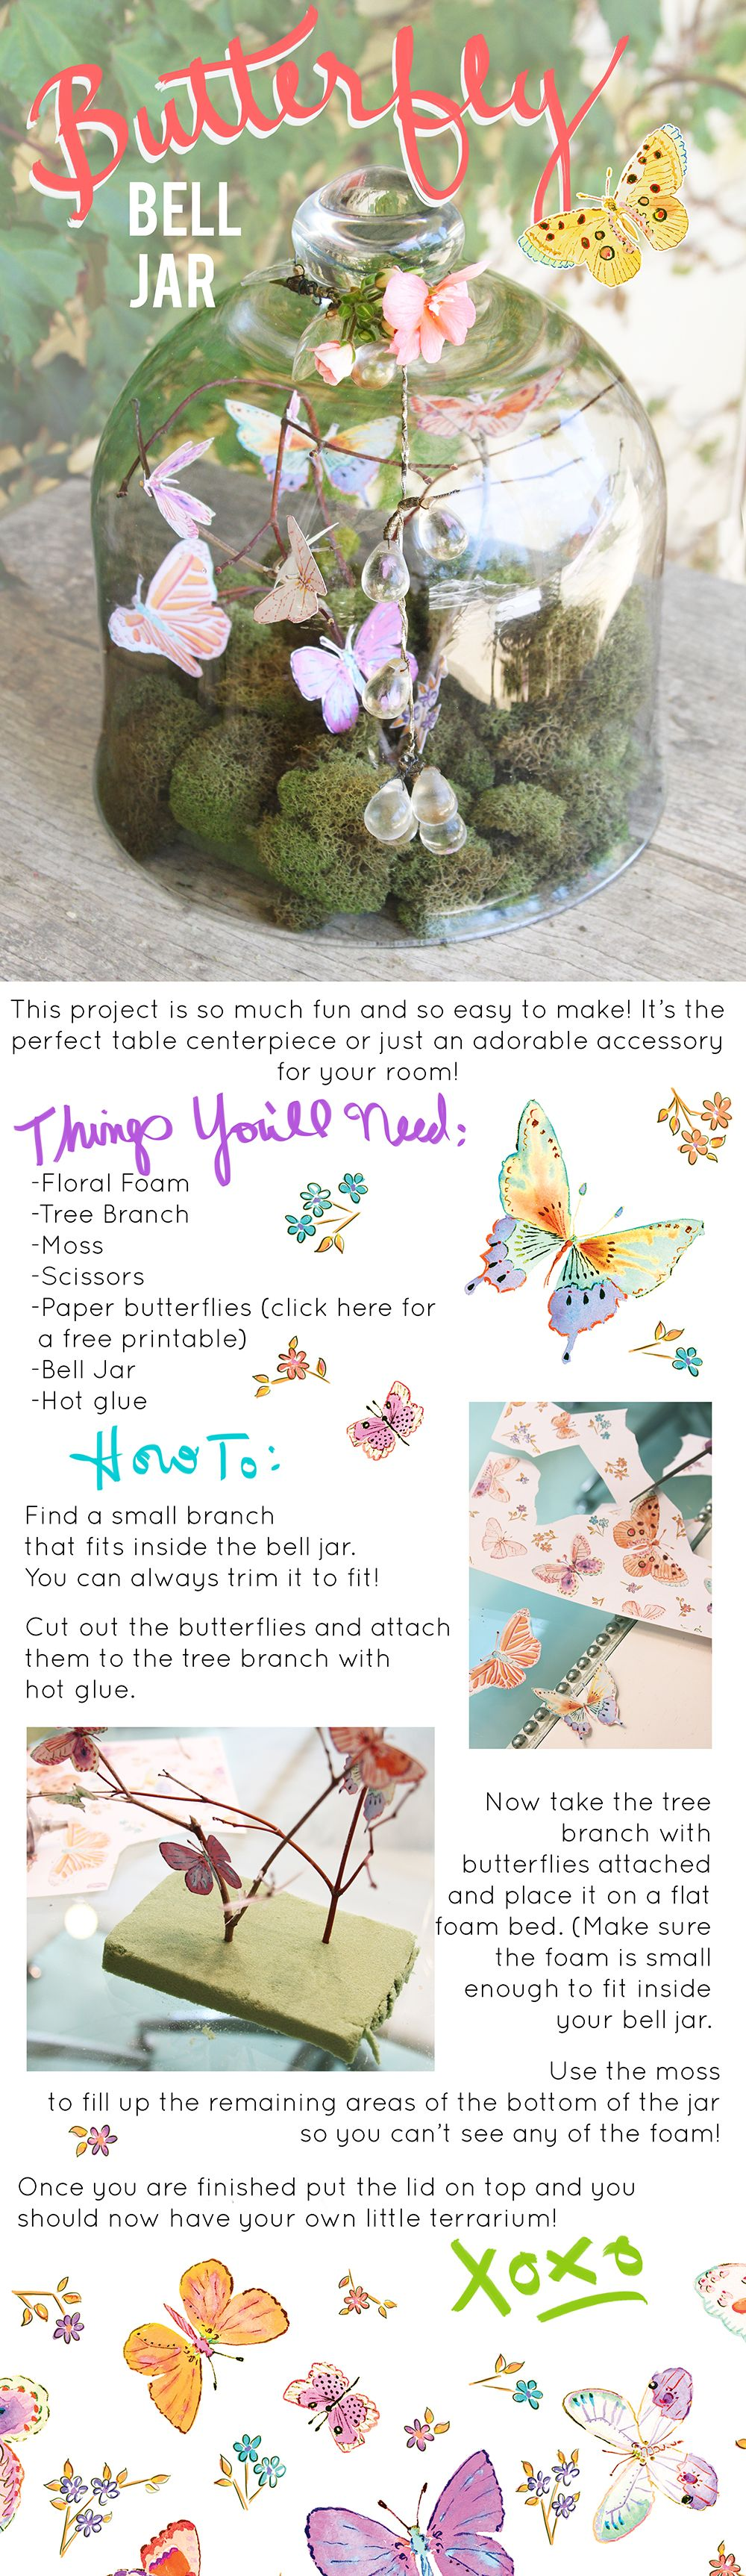 DIY Decor Butterfly Bell Jar Centerpiece